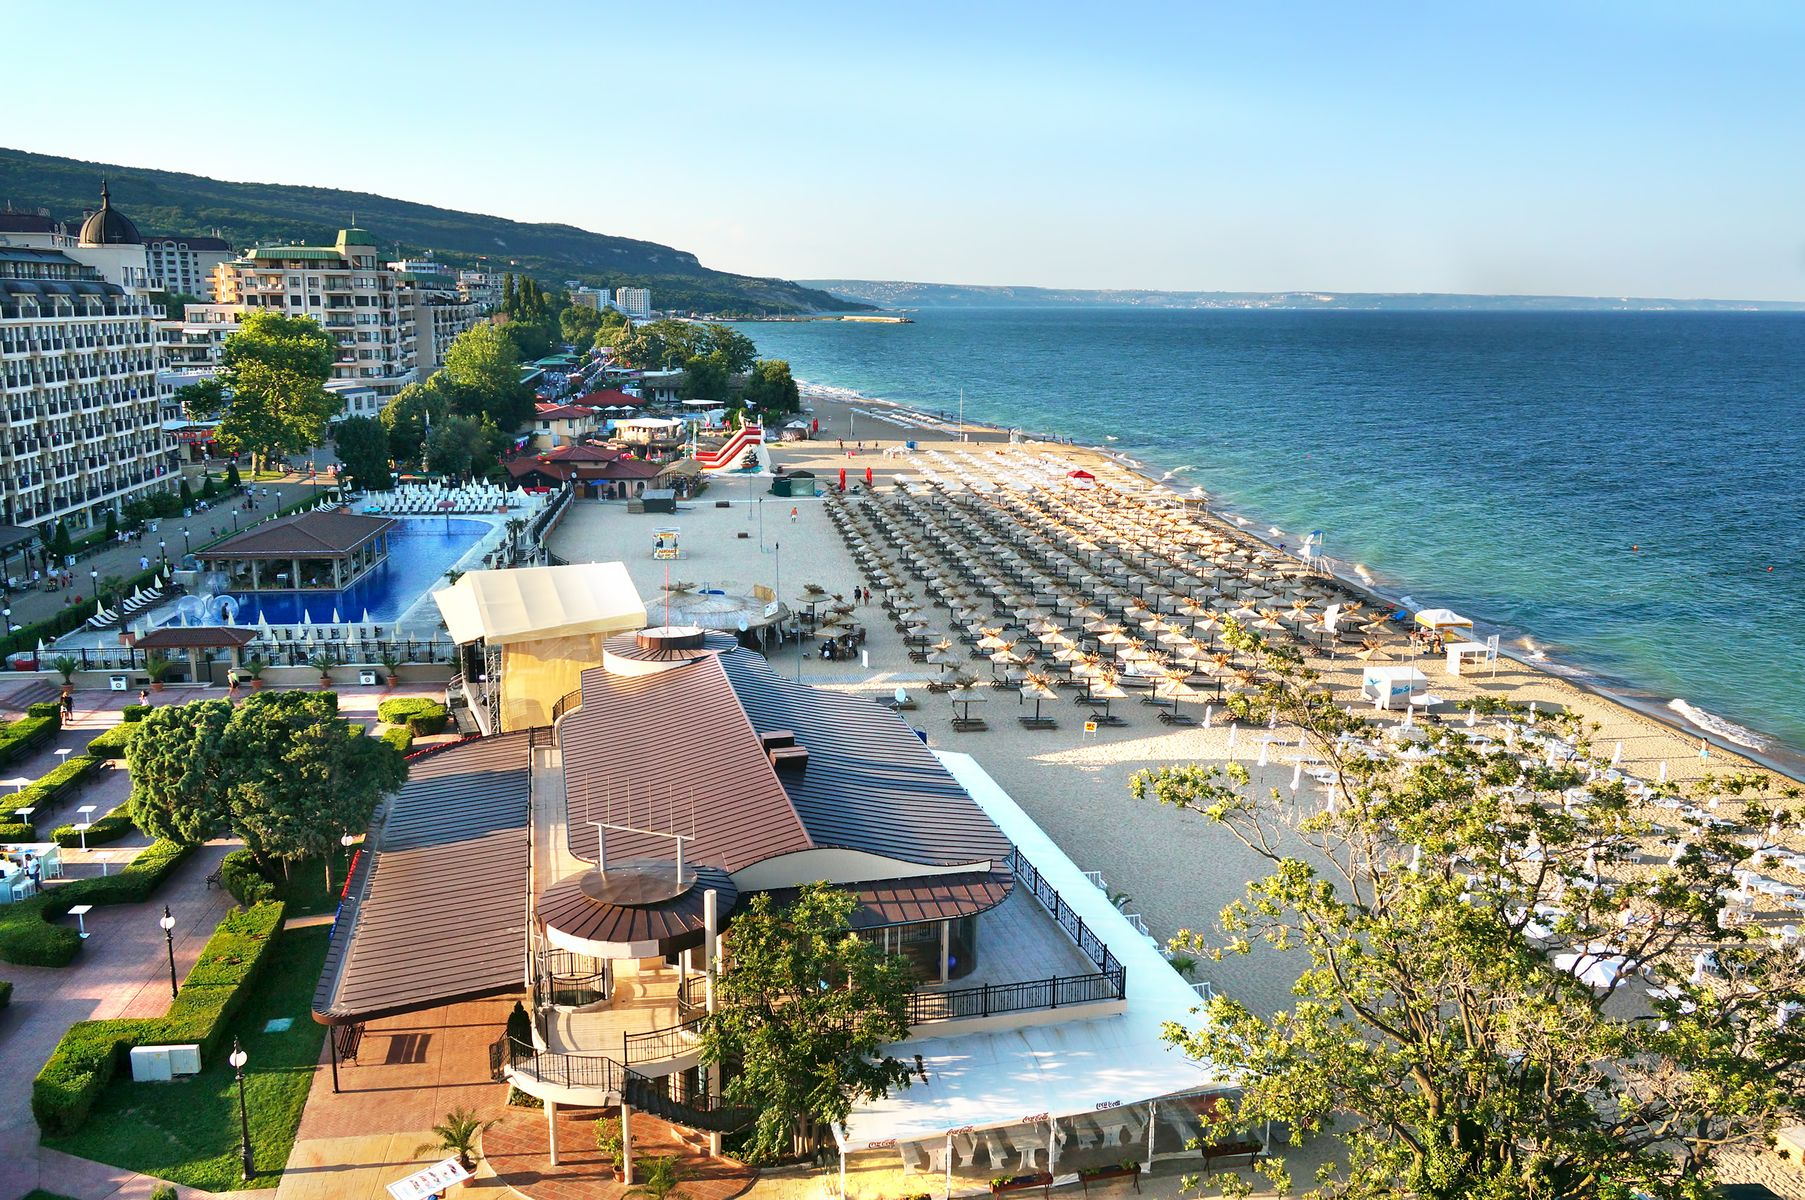 Panorama de la playa y hoteles en un Resort en Sunny Beach, Bulgaria